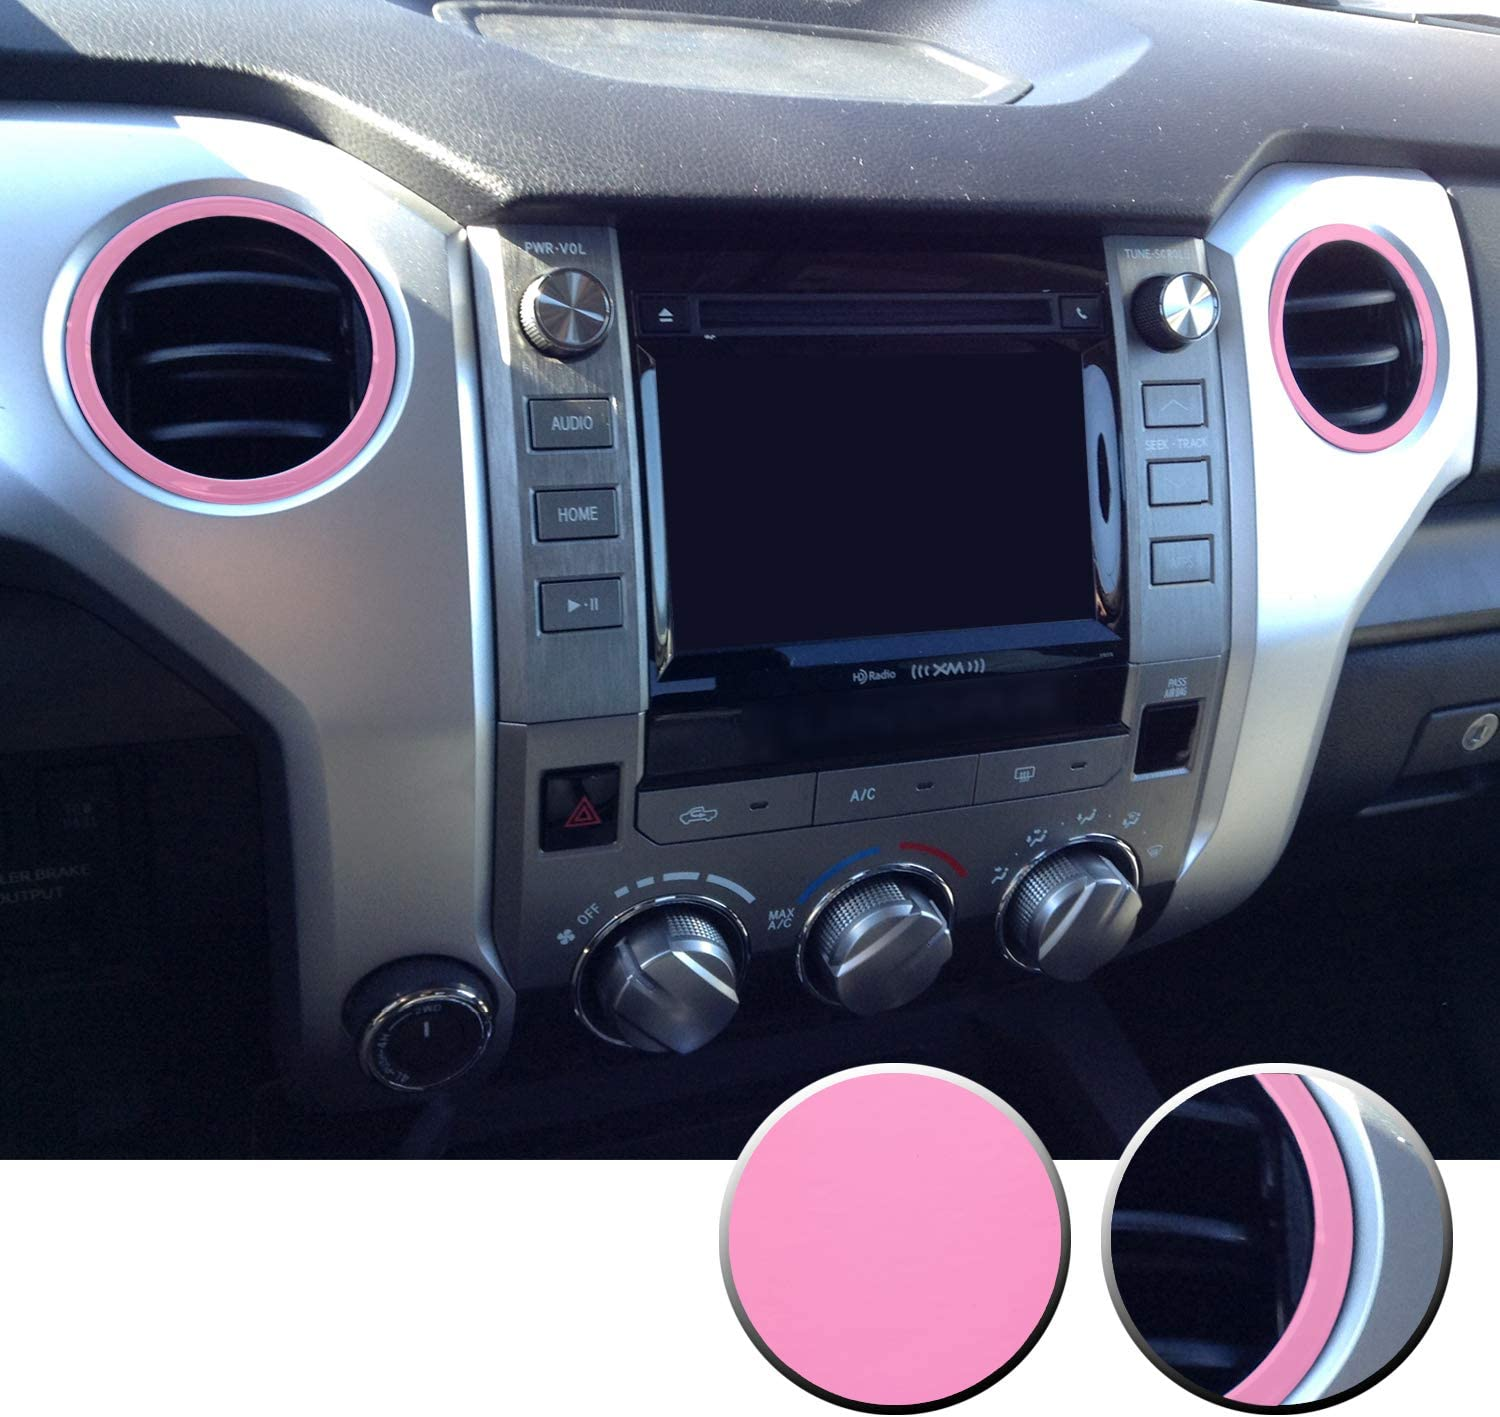 Optix AC Vent Rings Vinyl Decal Overlays Wrap Trim Inserts Sticker Compatible with and Fits Tundra 2014 2015 2016 2017 2018 2019 2020 Matte Pink